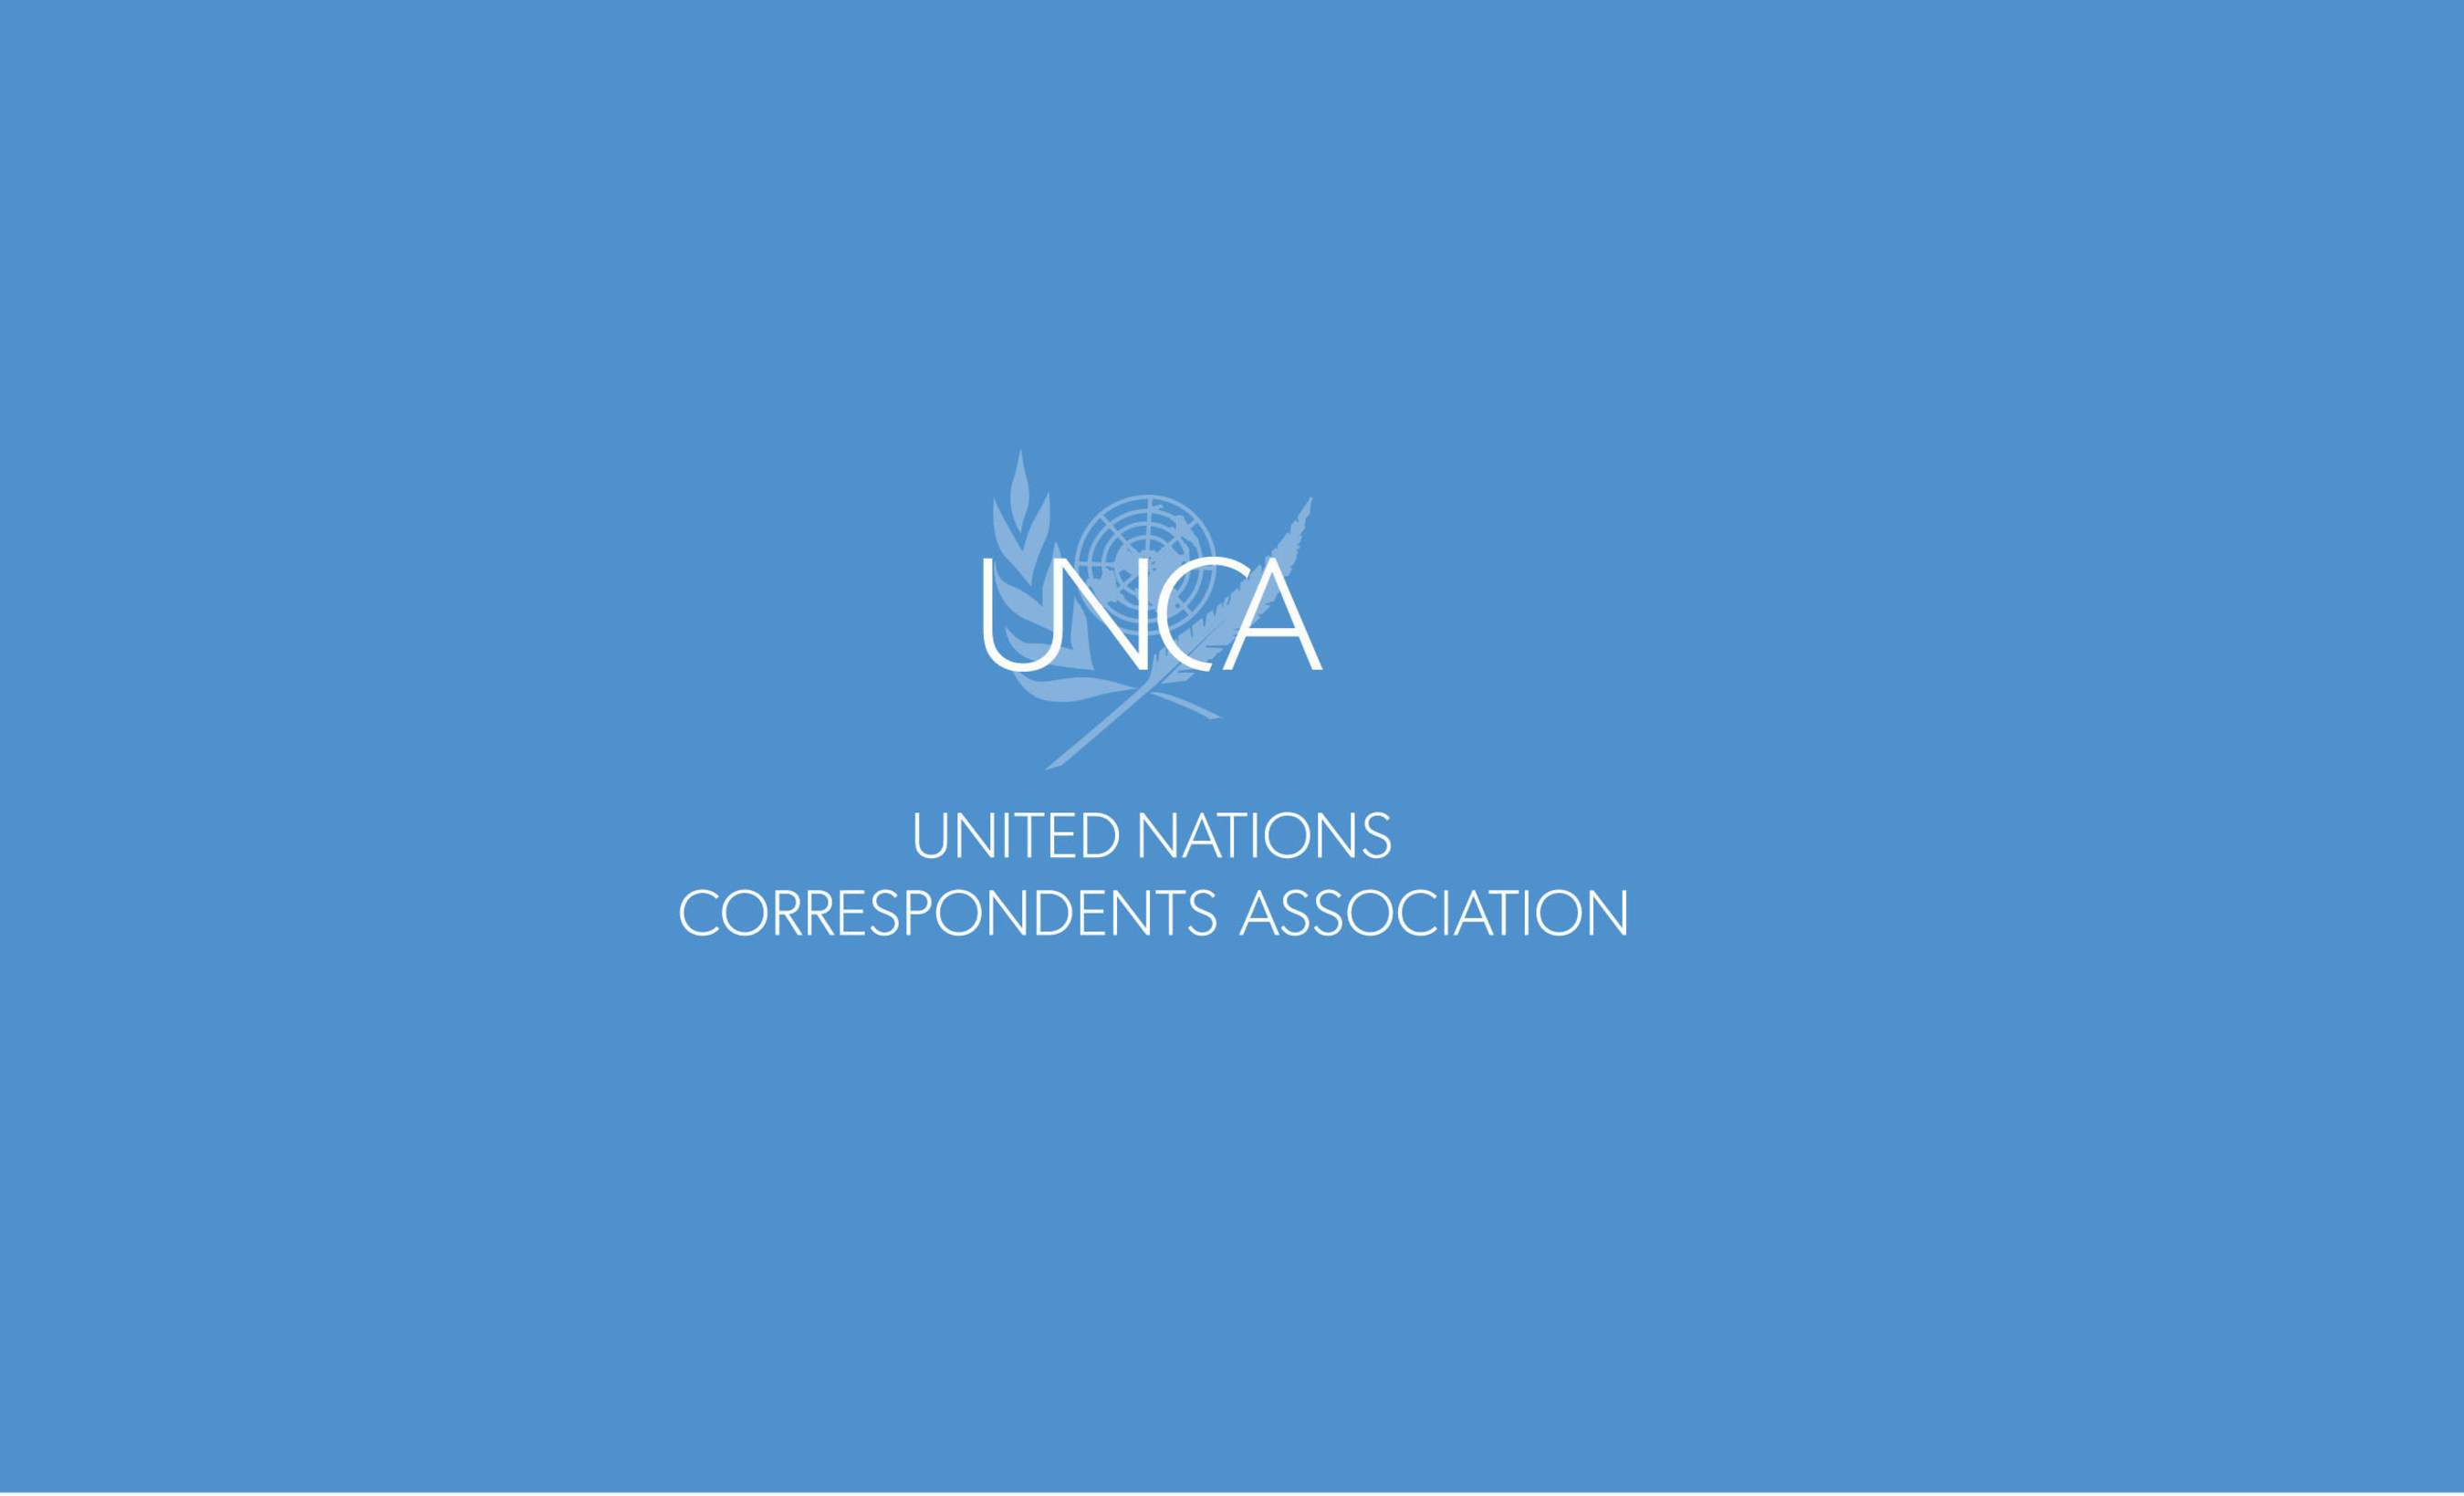 United Nations Correspondents Association